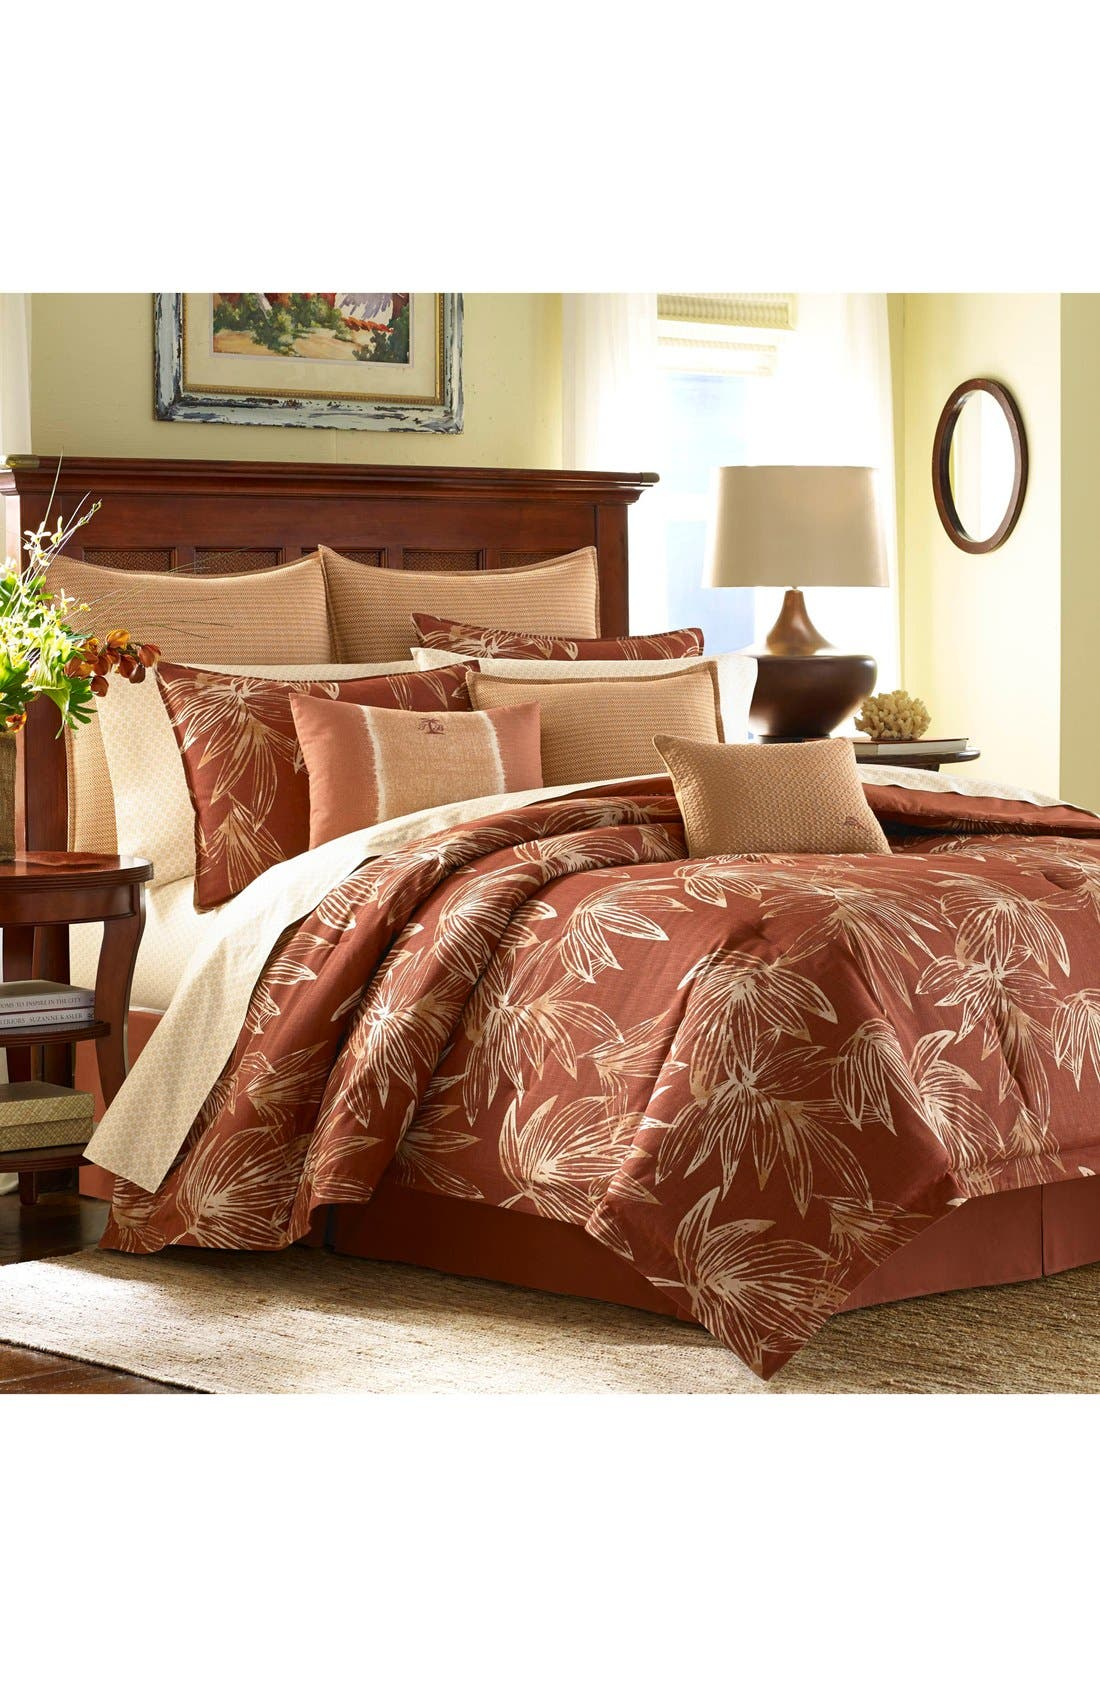 Tommy Bahama Cayo Coco Bedding Collection